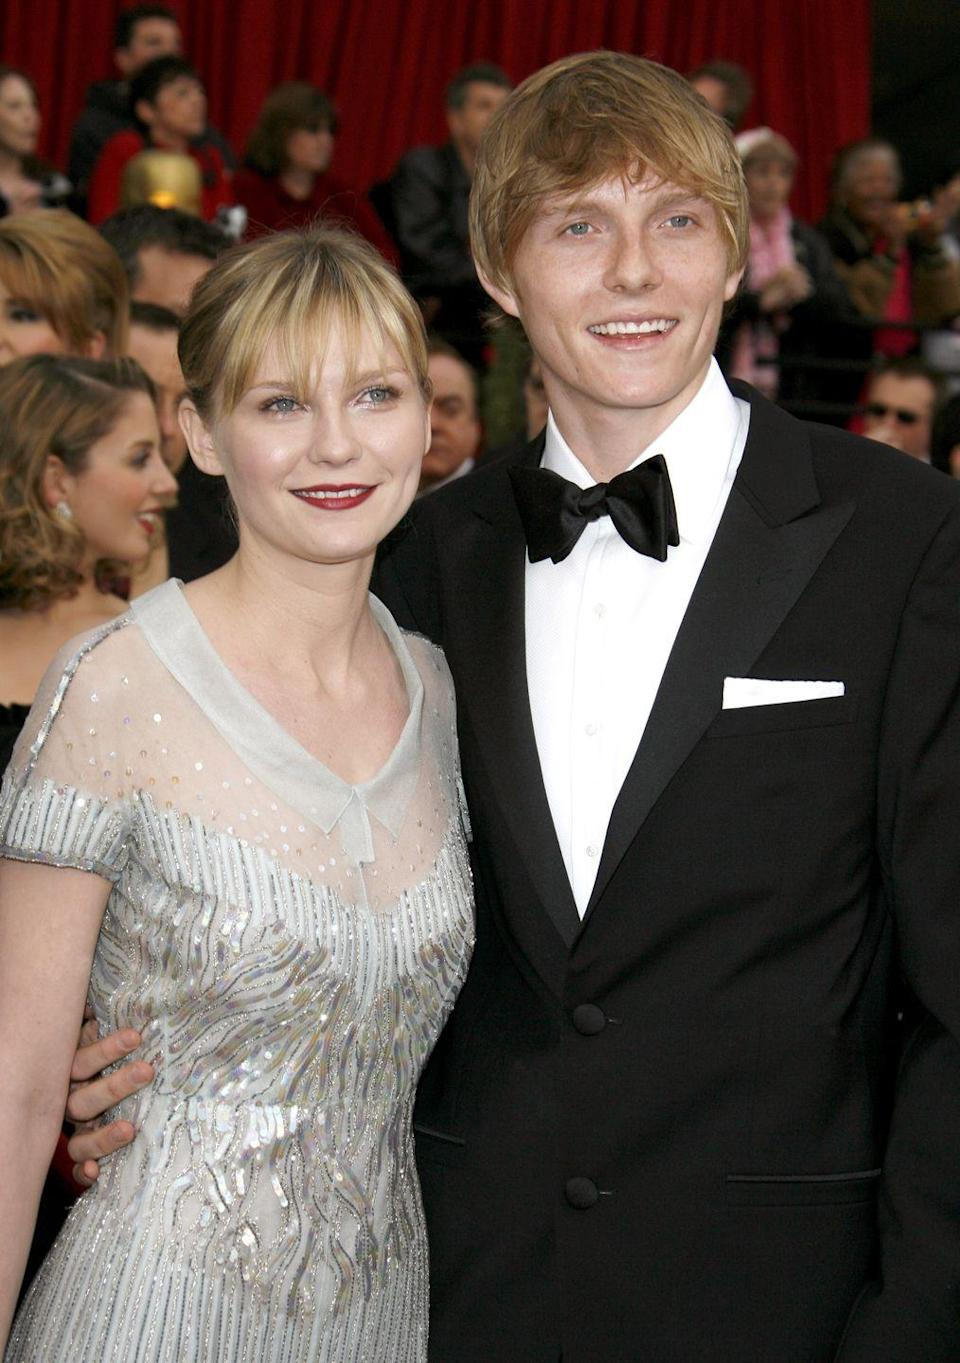 <p>No one would doubt that Kirsten and Christian Dunst are brother and sister. Between their sandy blonde hair and round, dimpled faces, the A-list actress and her younger brother clearly share the same genes. </p>